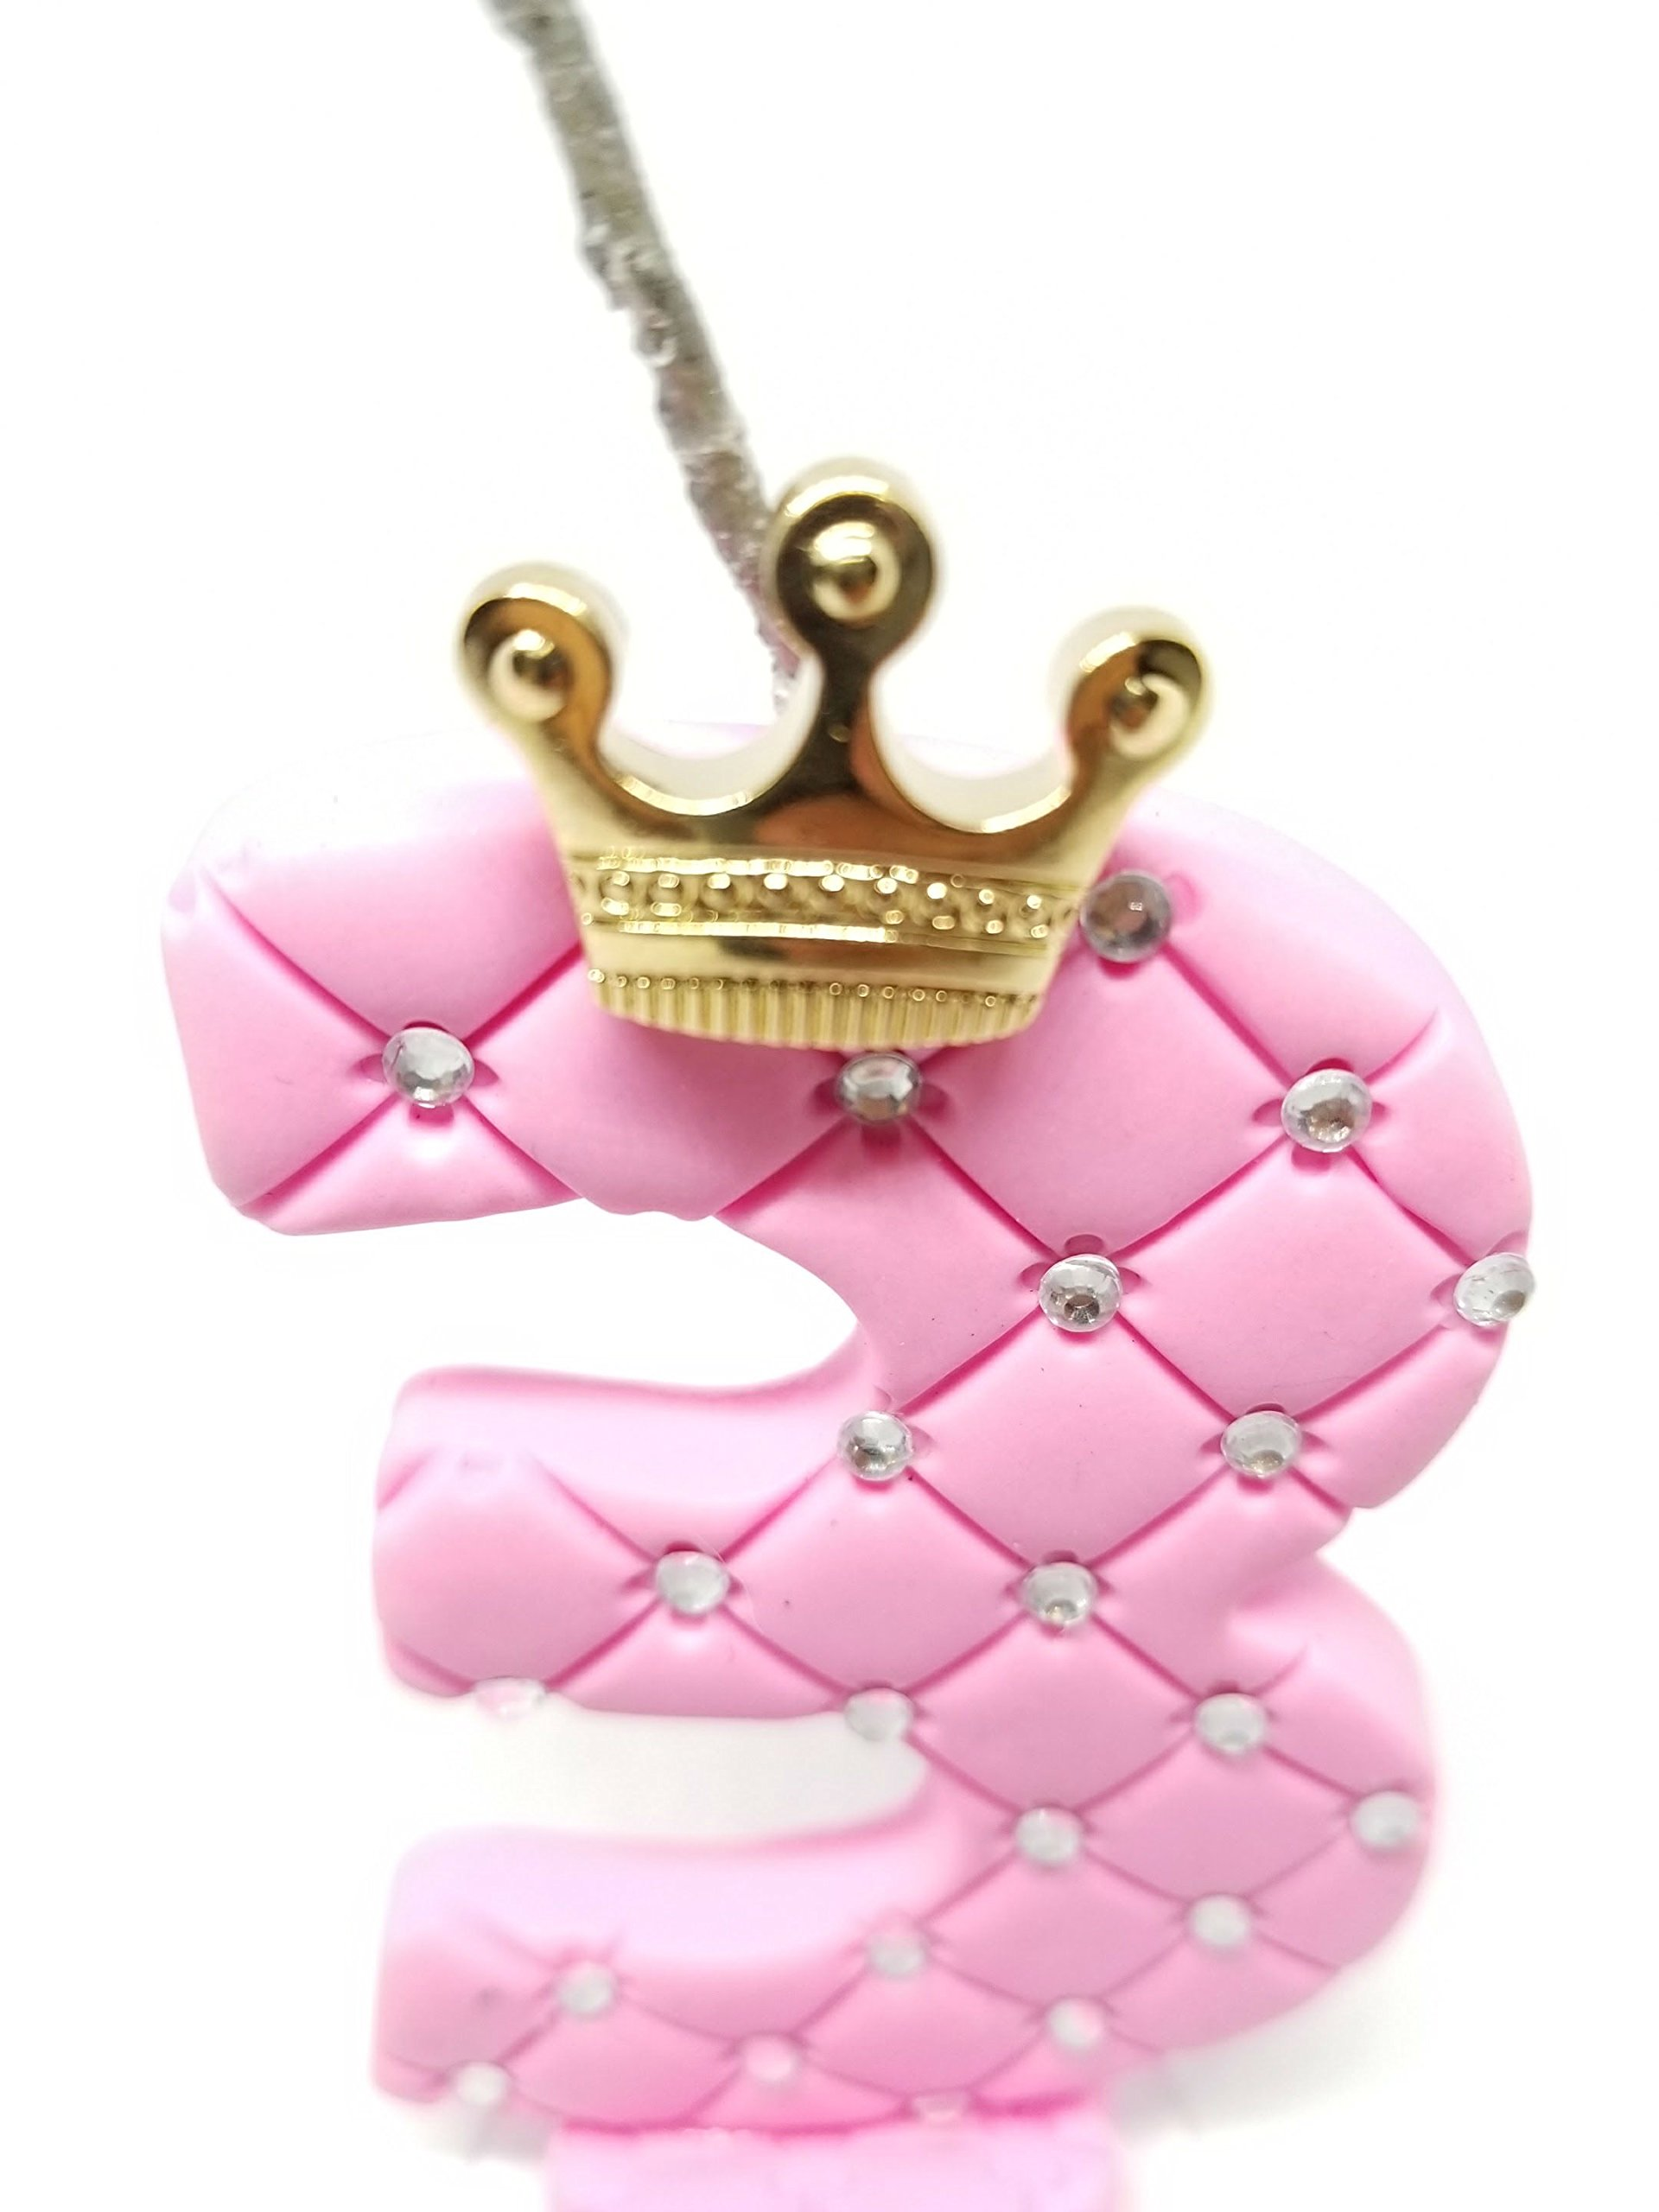 3rd Third Birthday Candle Number Boy Girl - 3 Three Year Candle Number - Handmade Candles - Happy Birthday Cake Topper - Pink Candle Cake by BRASPA (Image #6)